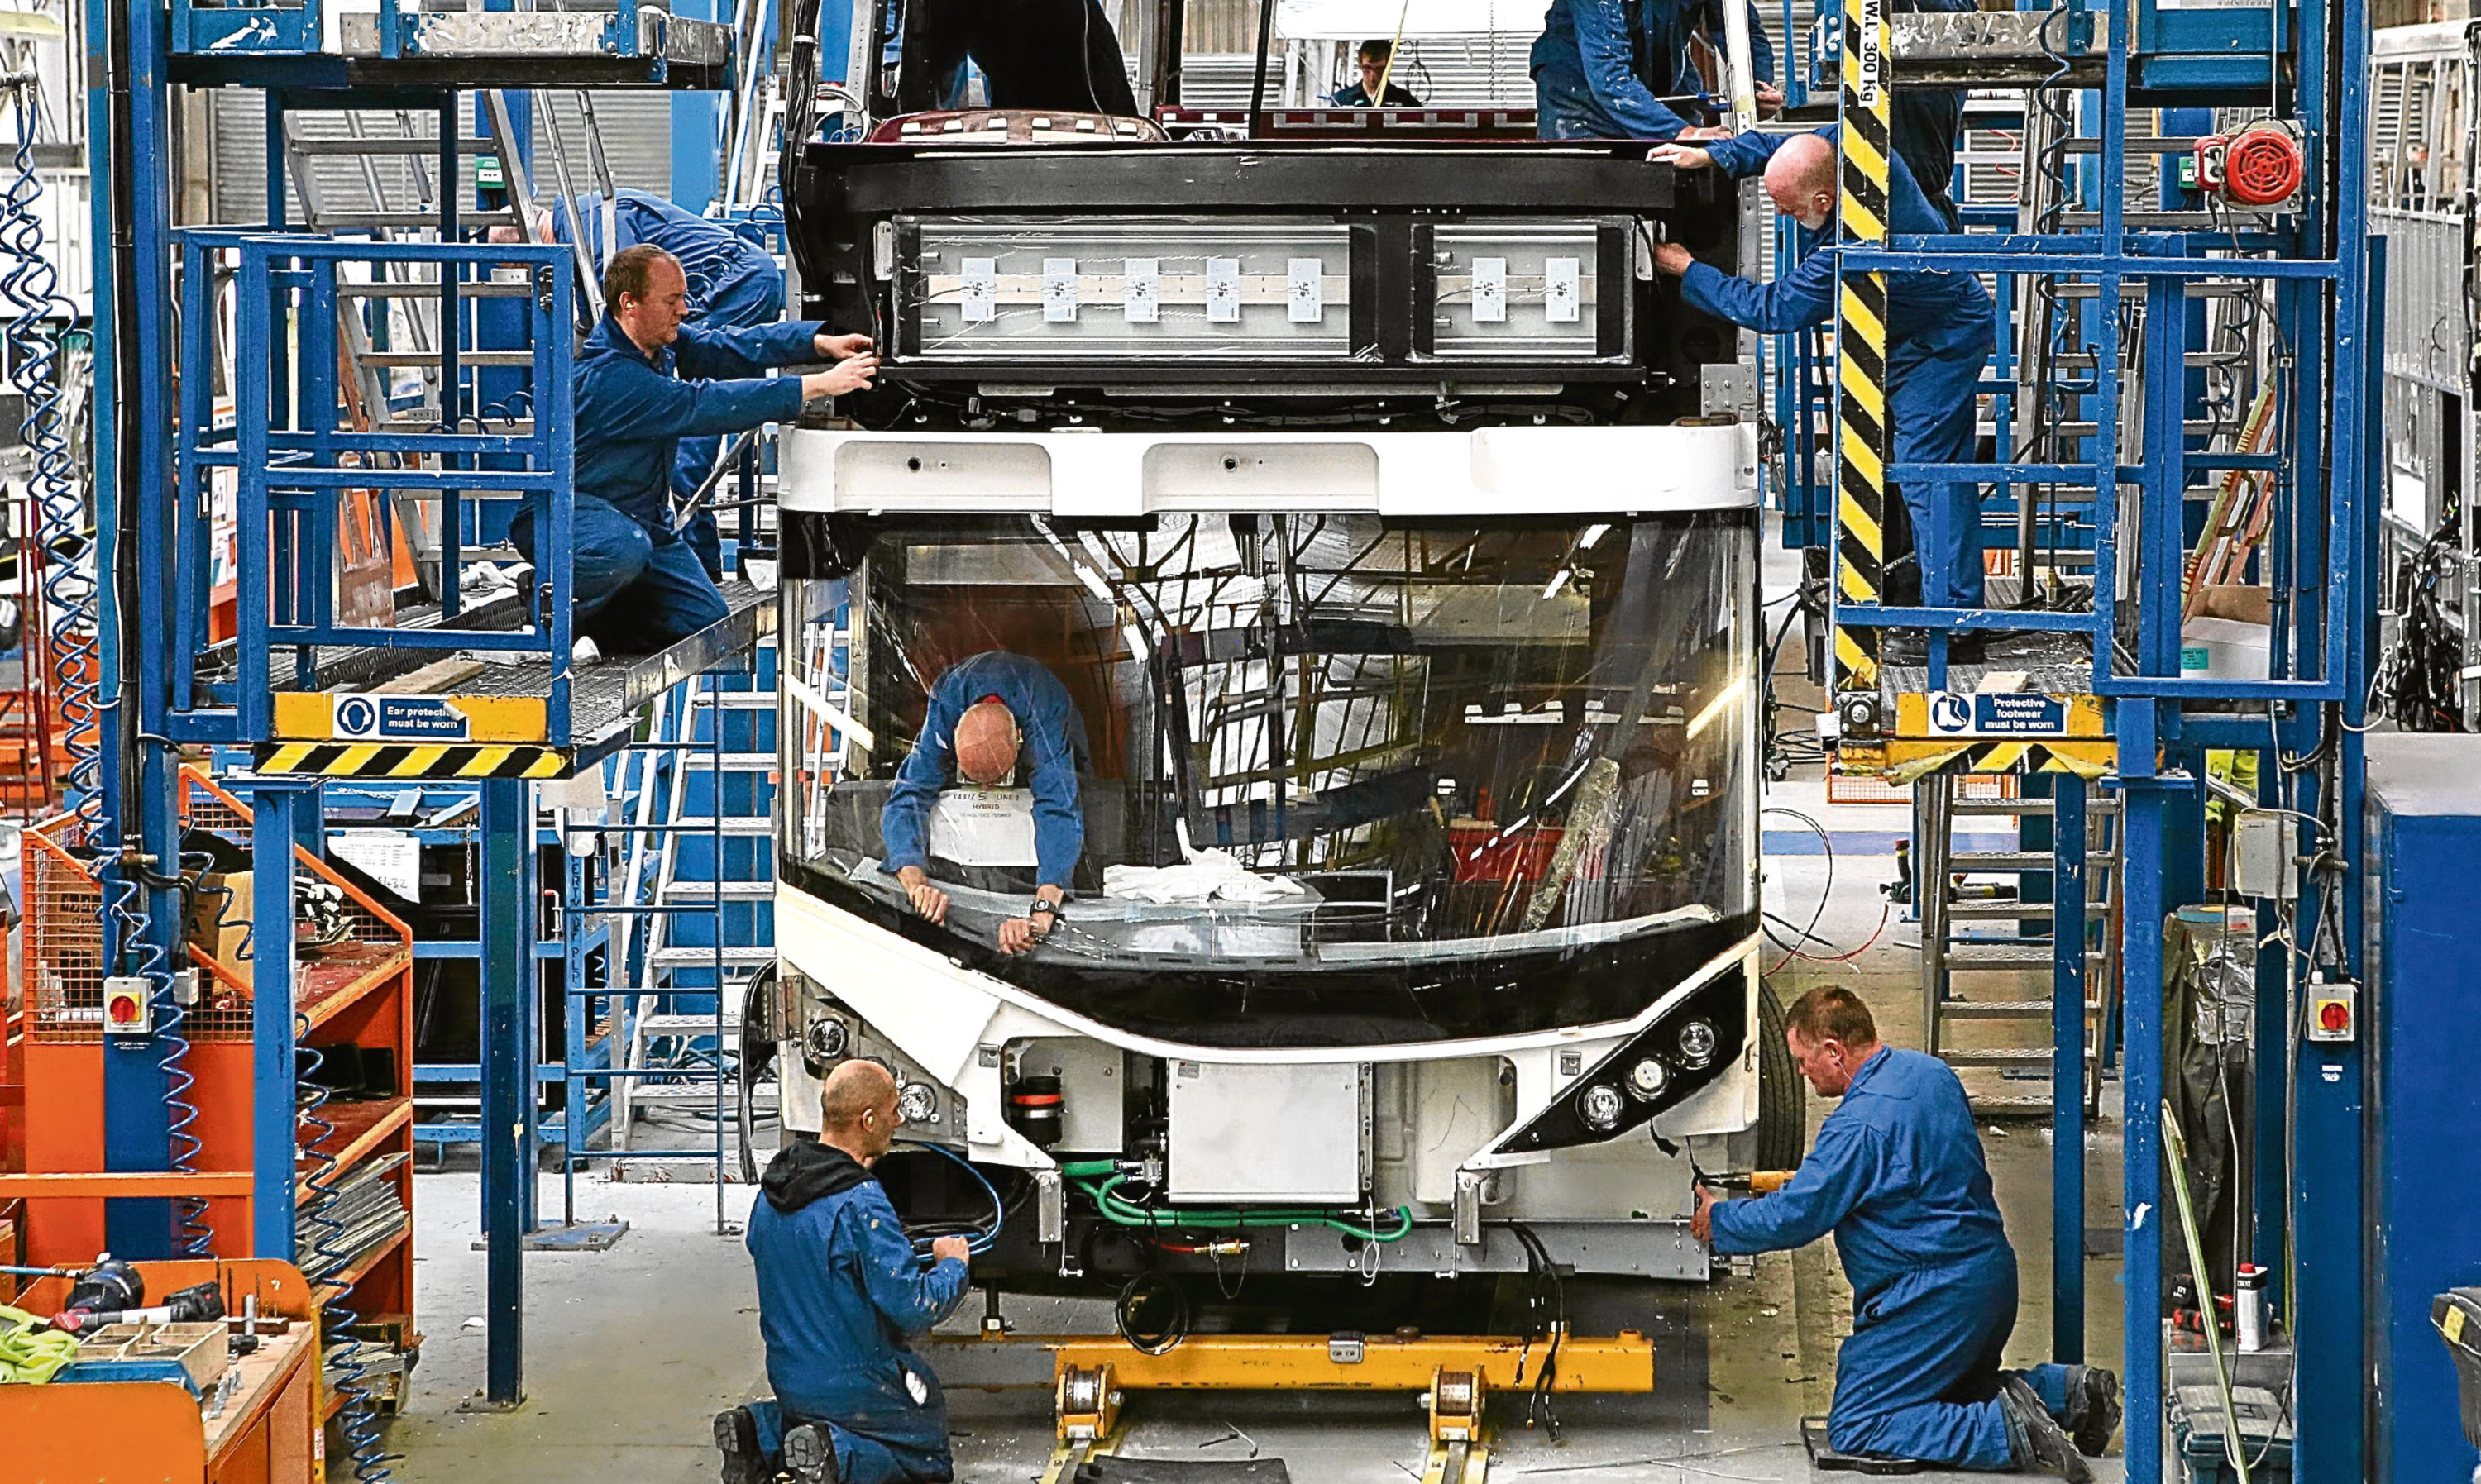 Alexander Dennis technicians work on a new bus build.